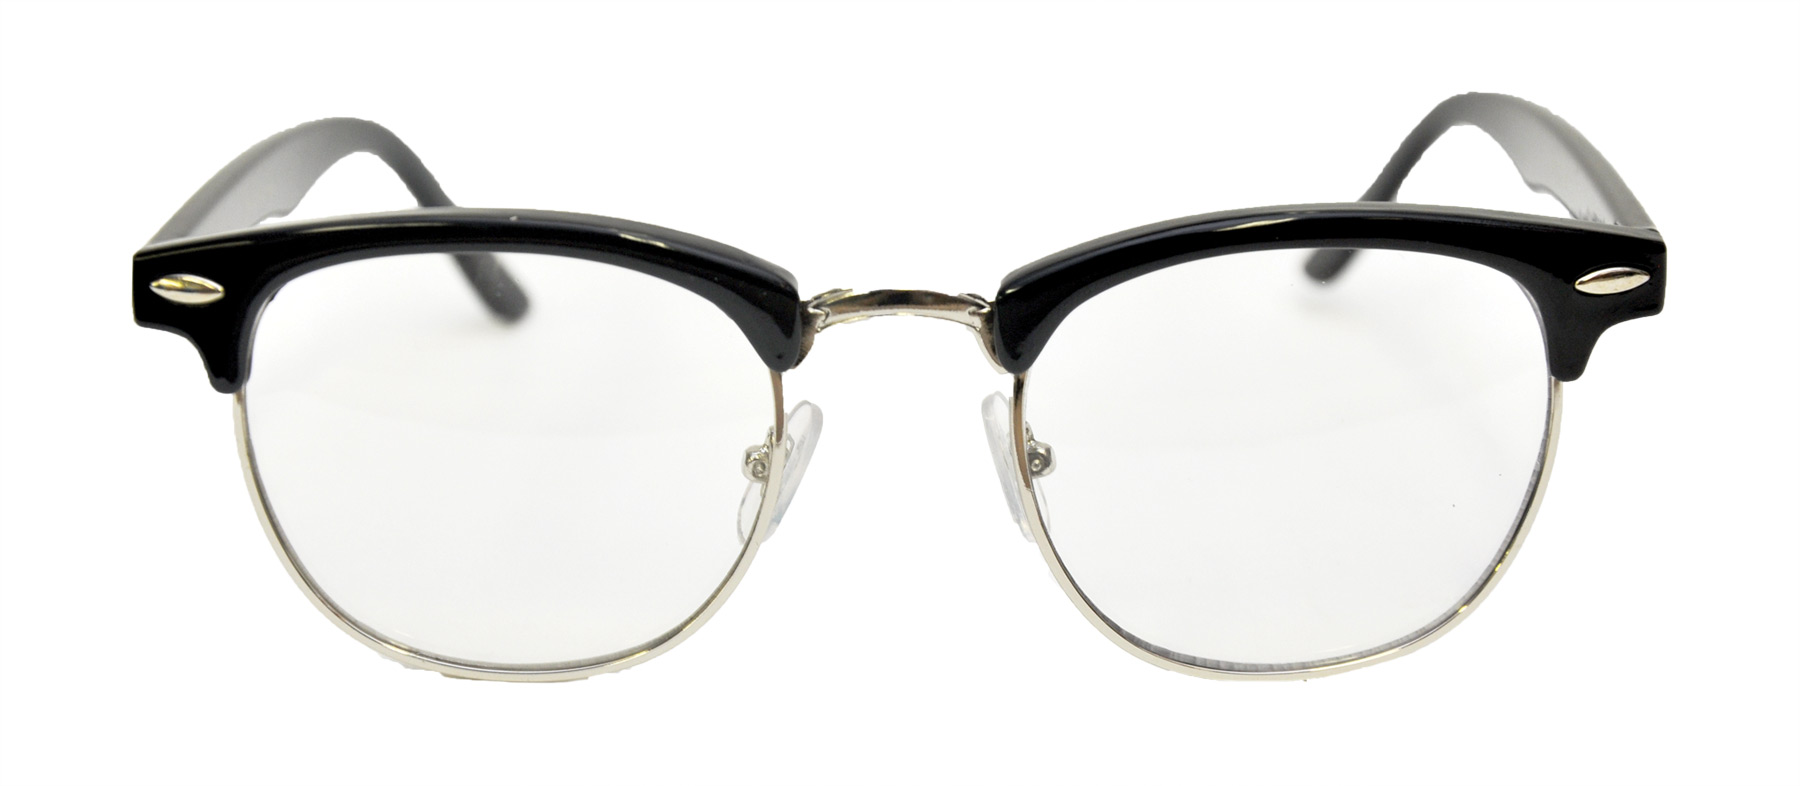 Featured Image for Black Mr. 50s Glasses